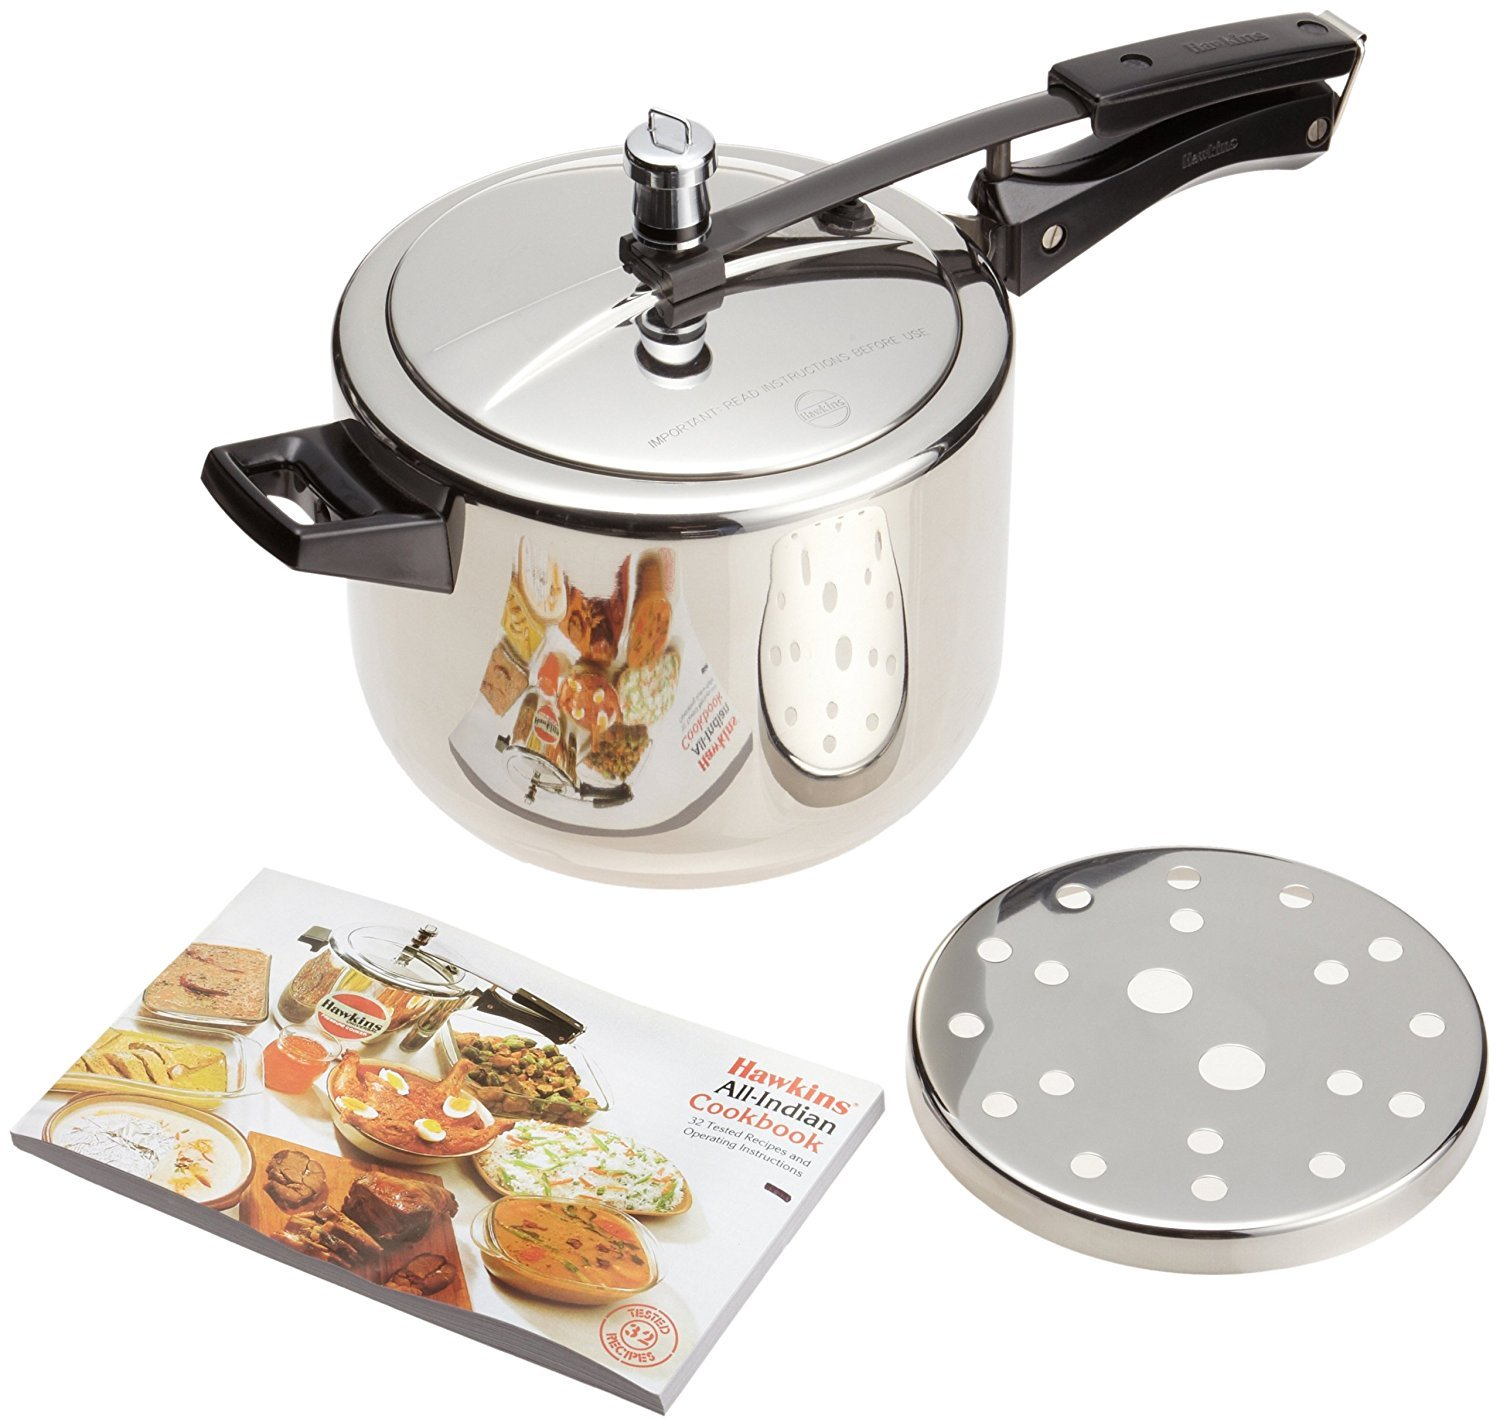 Hawkins Stainless Steel Pressure Cooker Induction Compatible (2 Litre Code: B25)